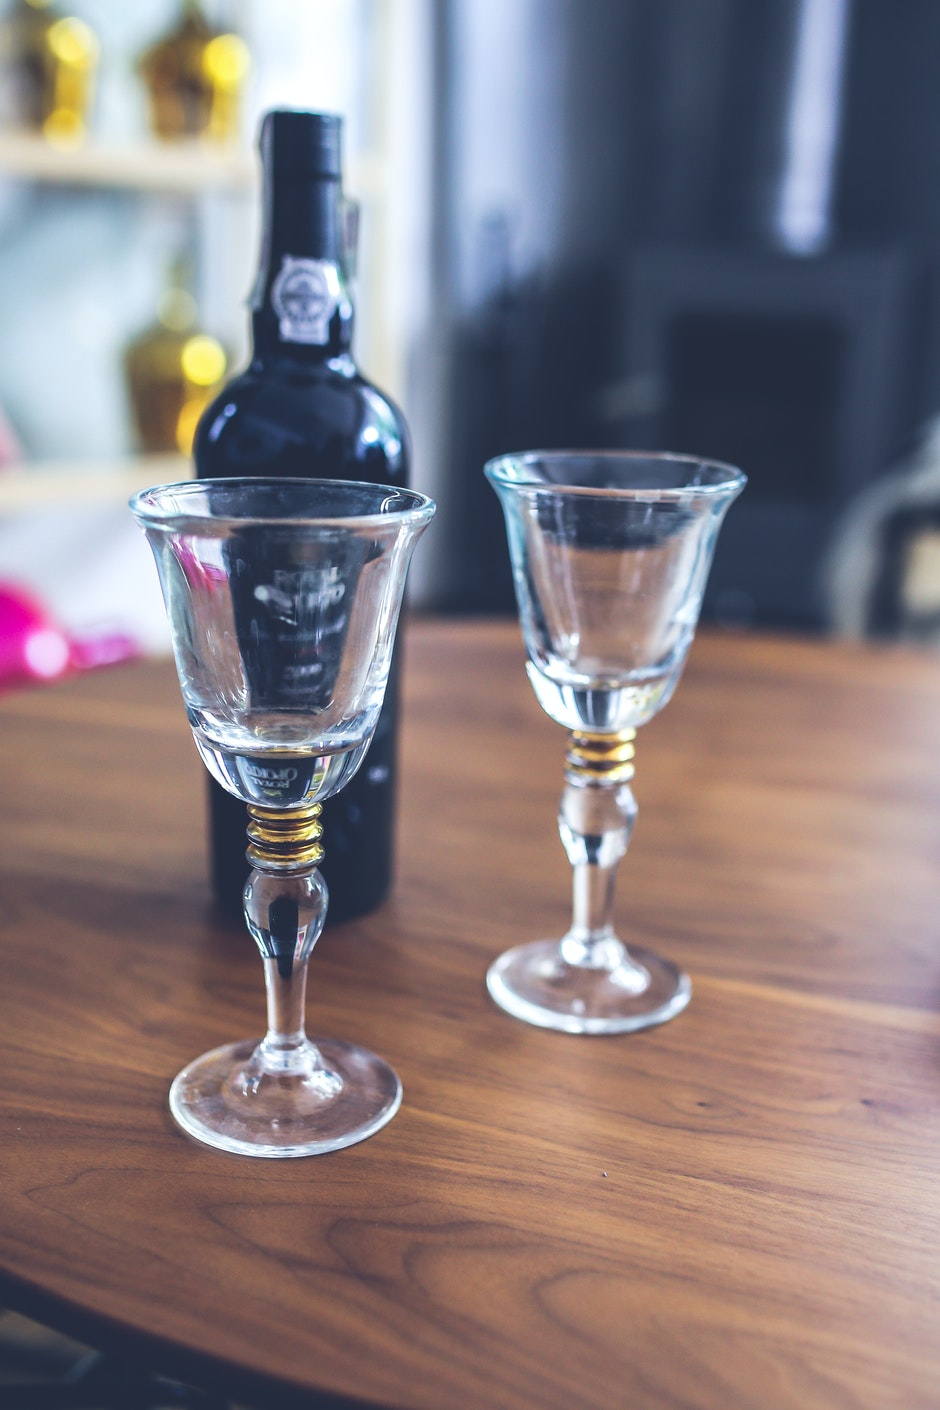 Two wine glasses & bottle